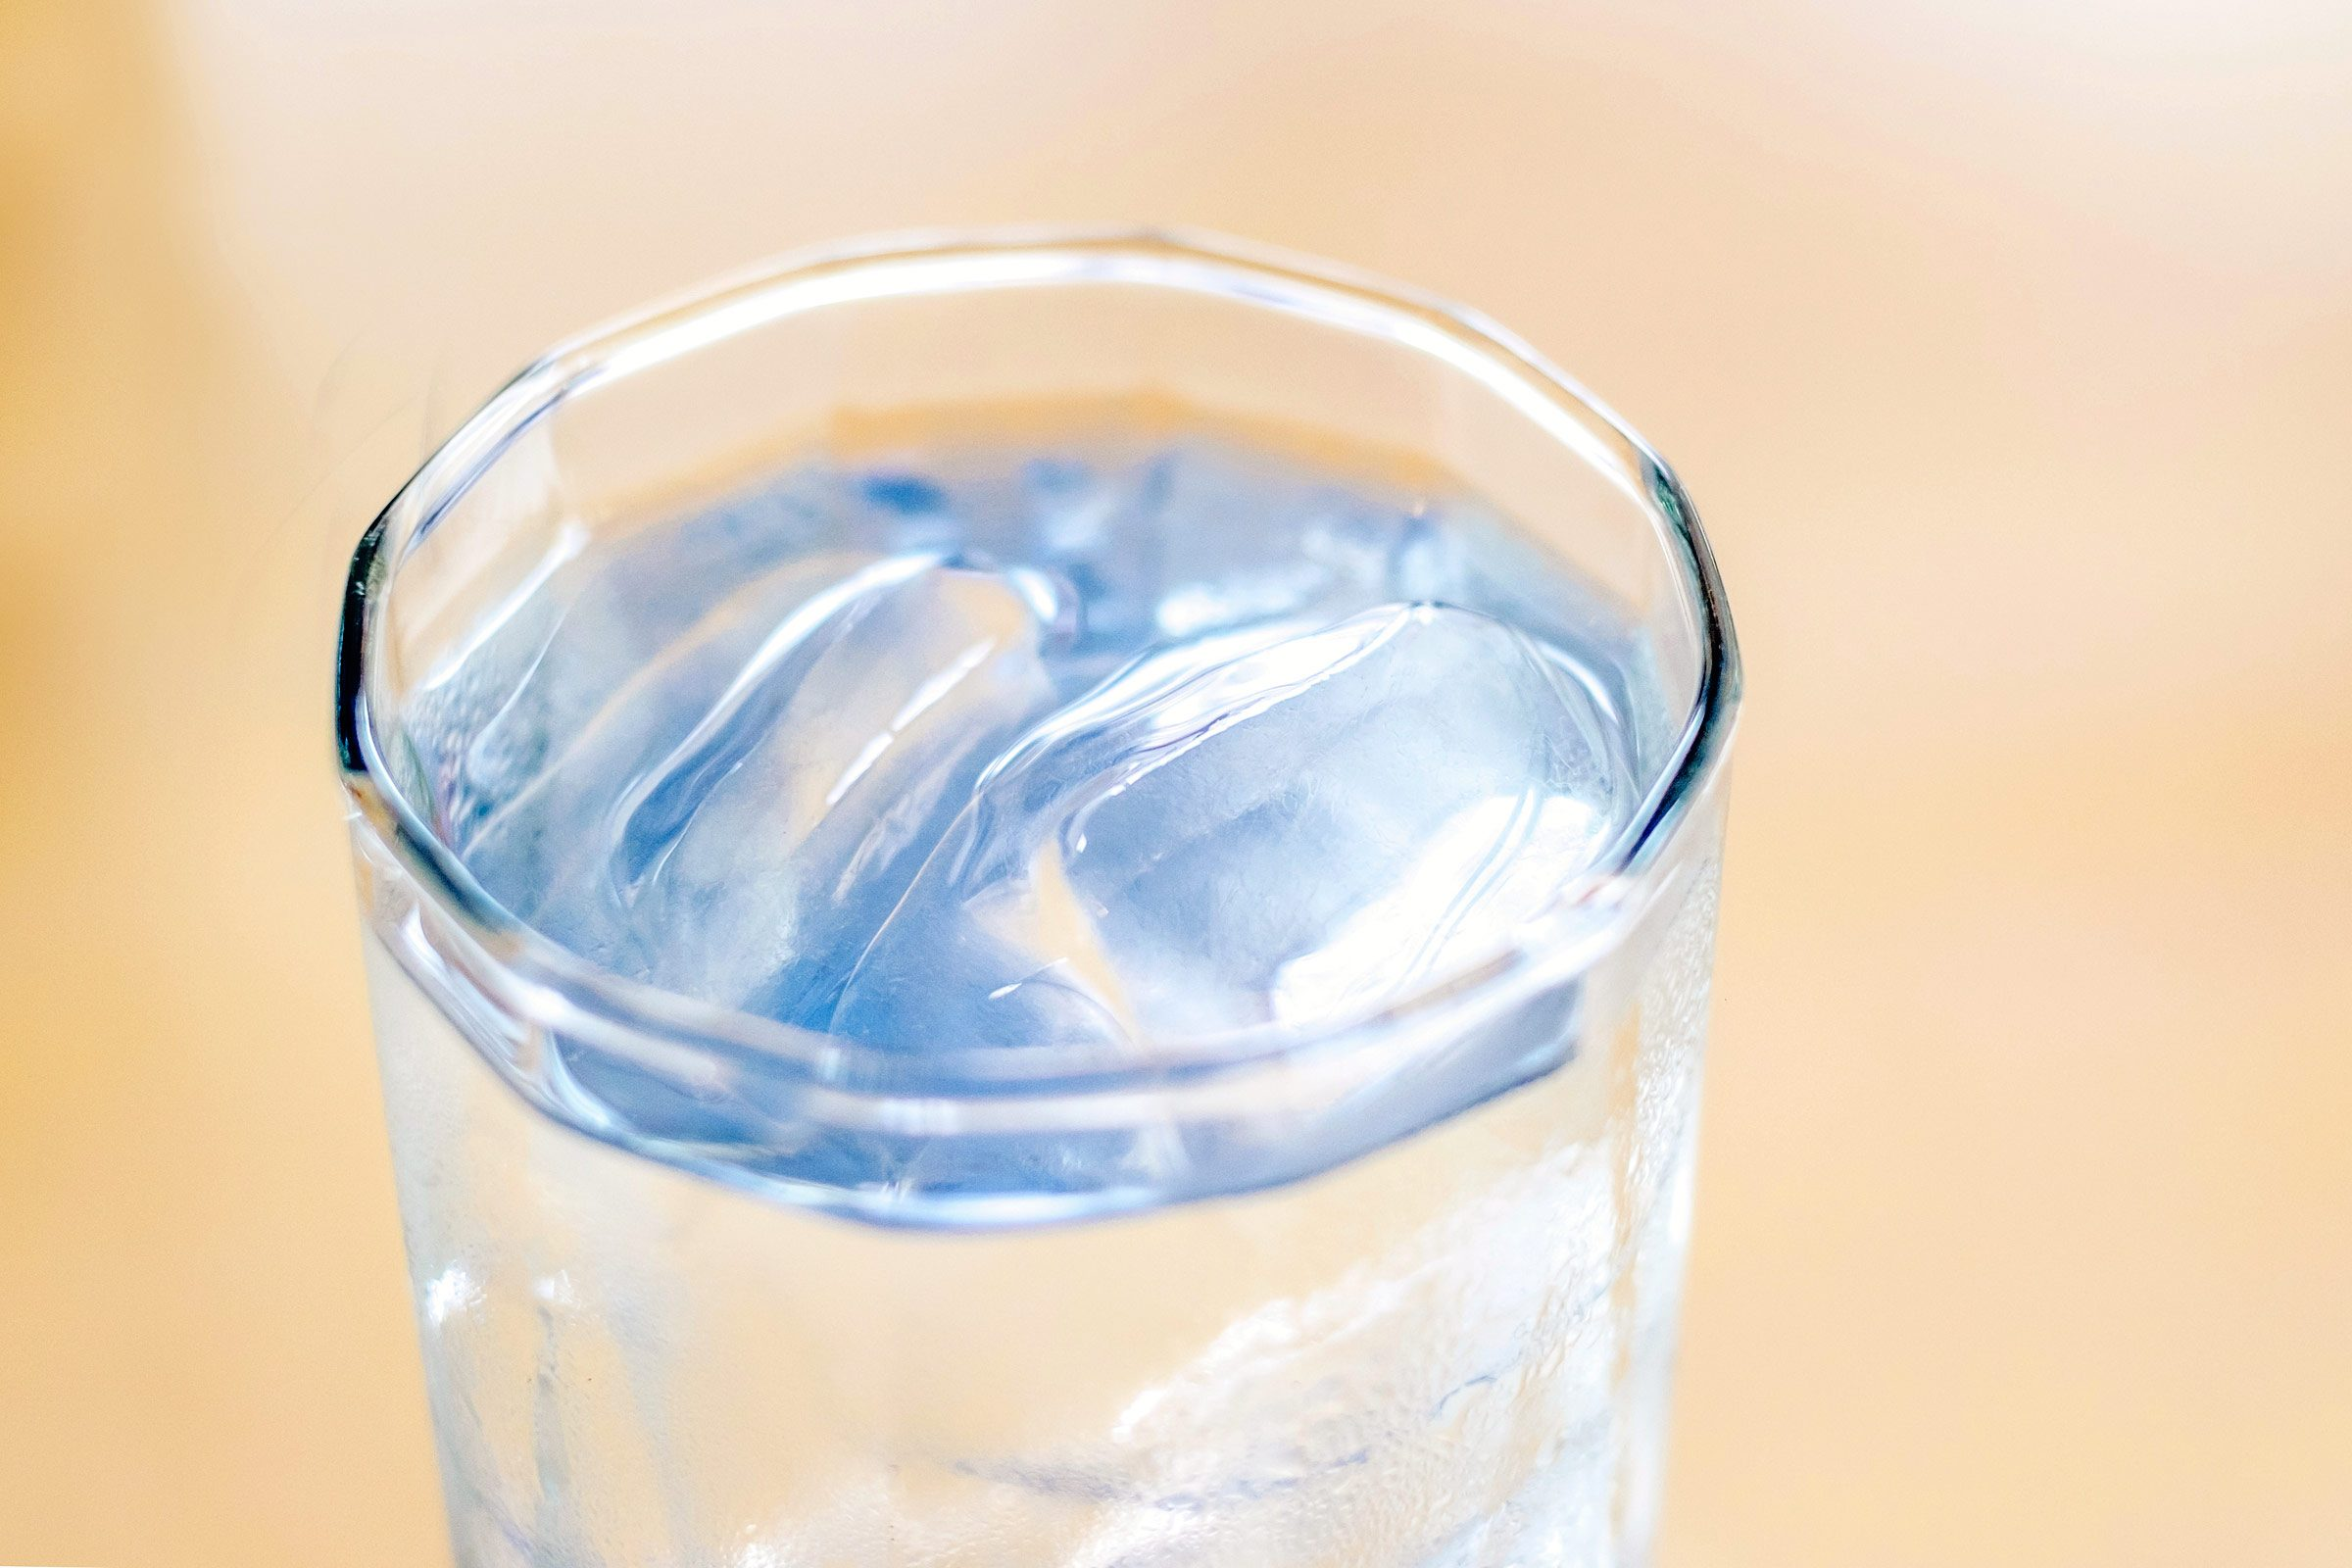 8. Hydrate All Day Long